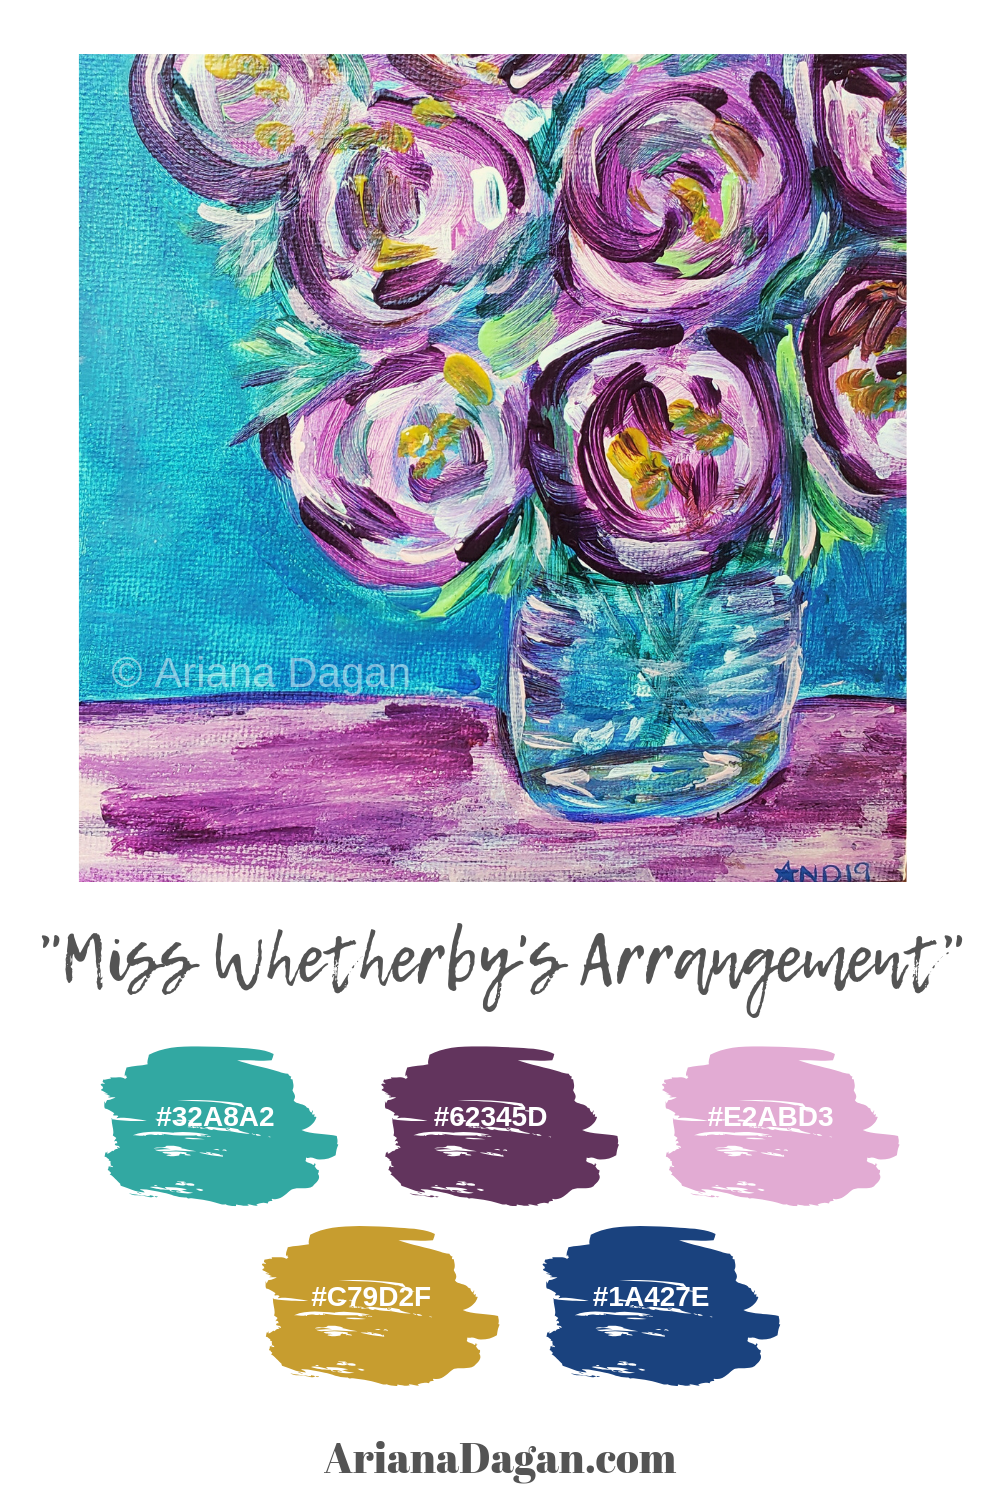 Miss Whetherby's Arrangement Color Palette by Ariana Dagan